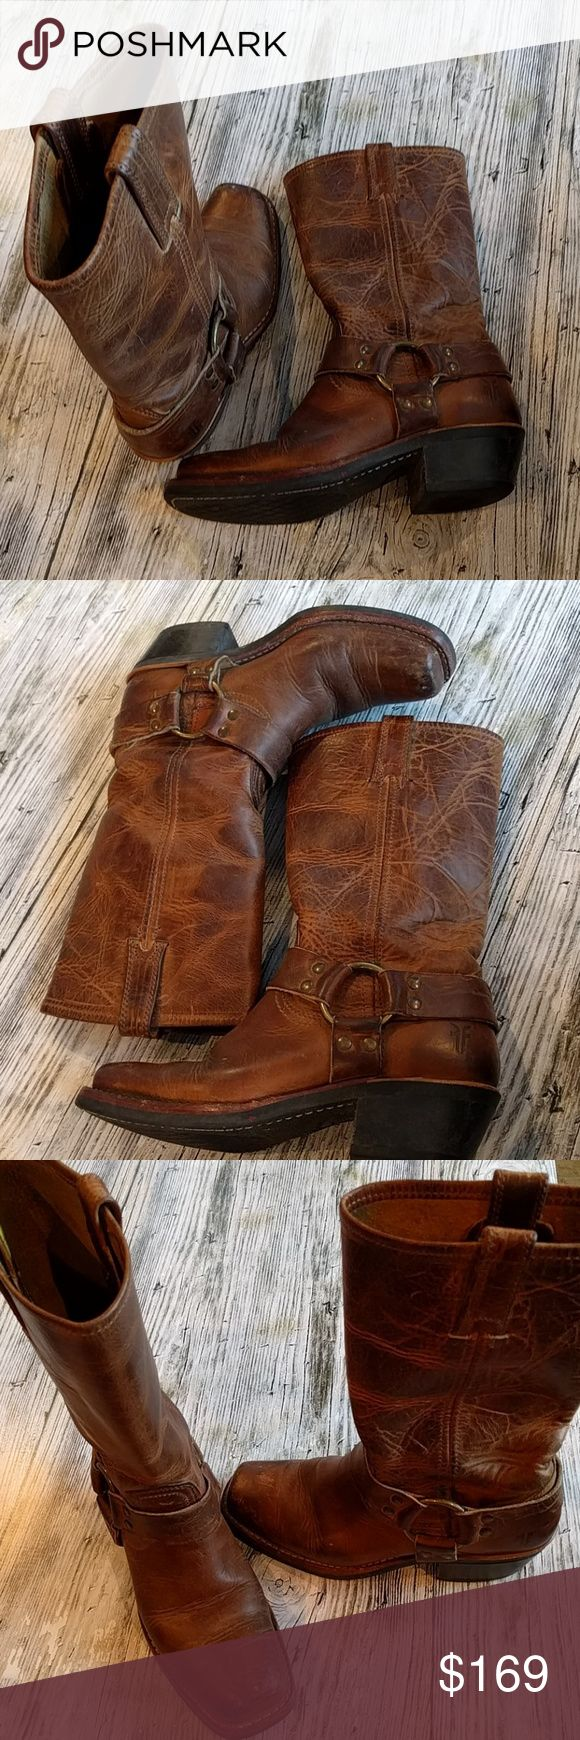 Rugged sexy Frye harness boots size 6 Nothing says classic America like the Frye harness boot Beautiful distressed look This boot is practically indestructible  will last for years Once you purchase these you won't need to buy another timeless style Size 6 Frye Shoes Heeled Boots